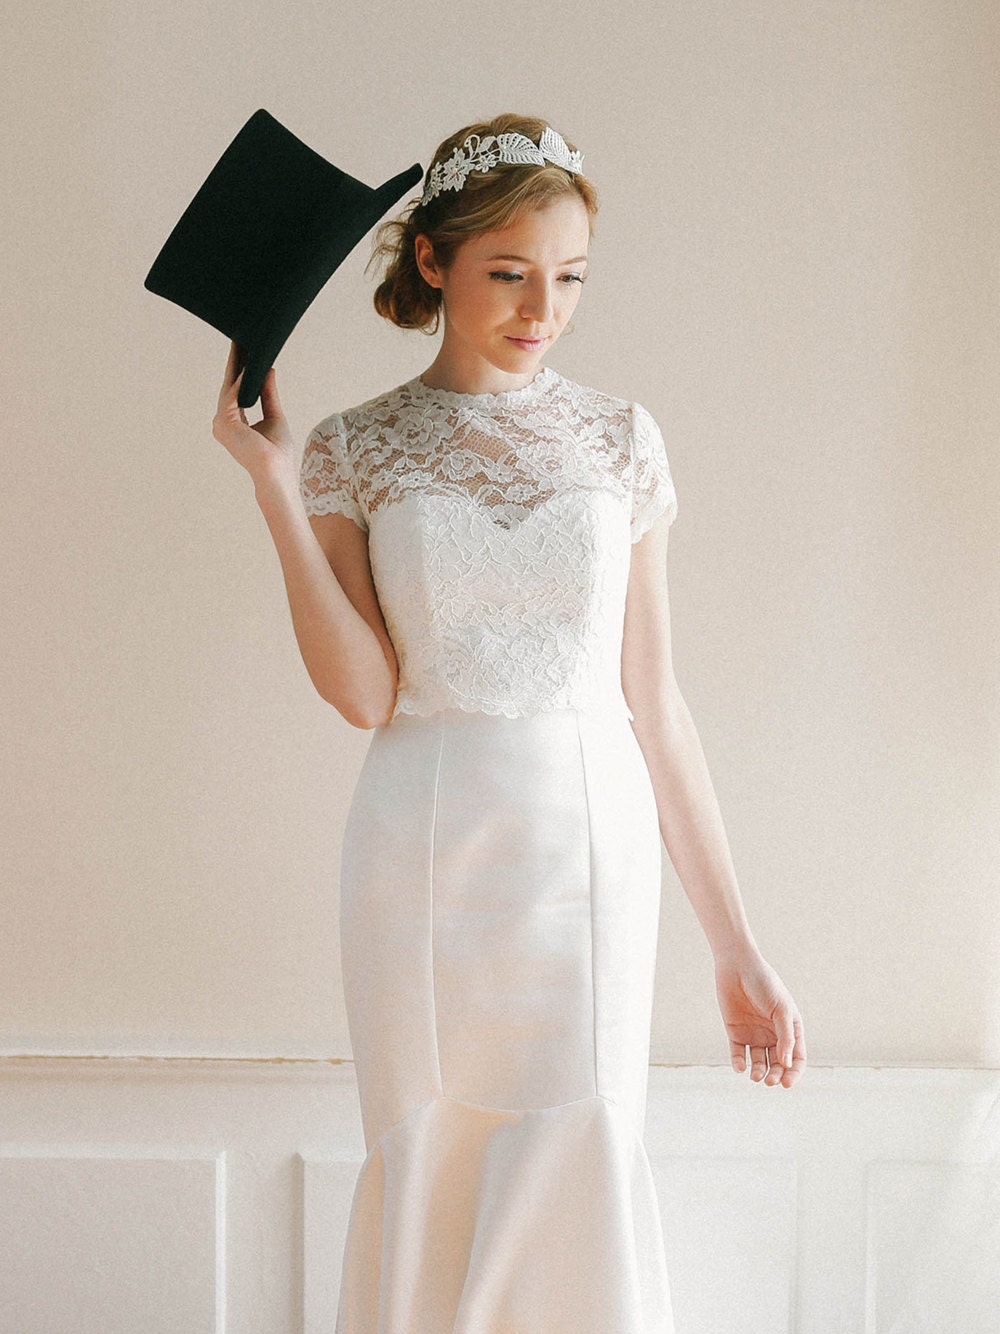 Wedding Lace Separate Bridal Lace Top Lace Topper By